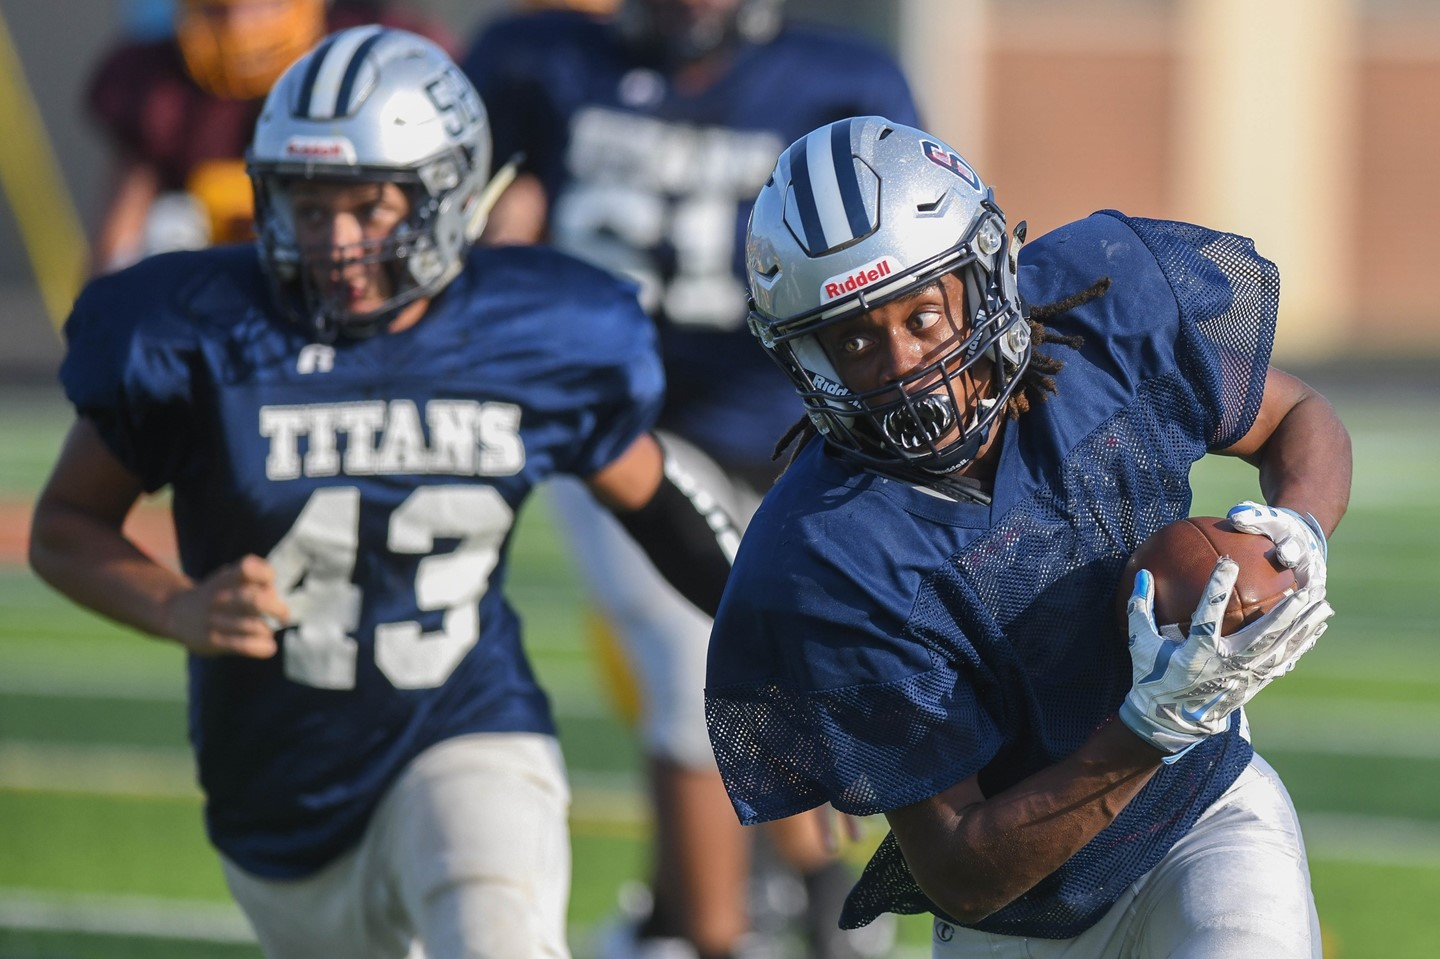 A titans player makes his way into the end zone during a scrimmage football game